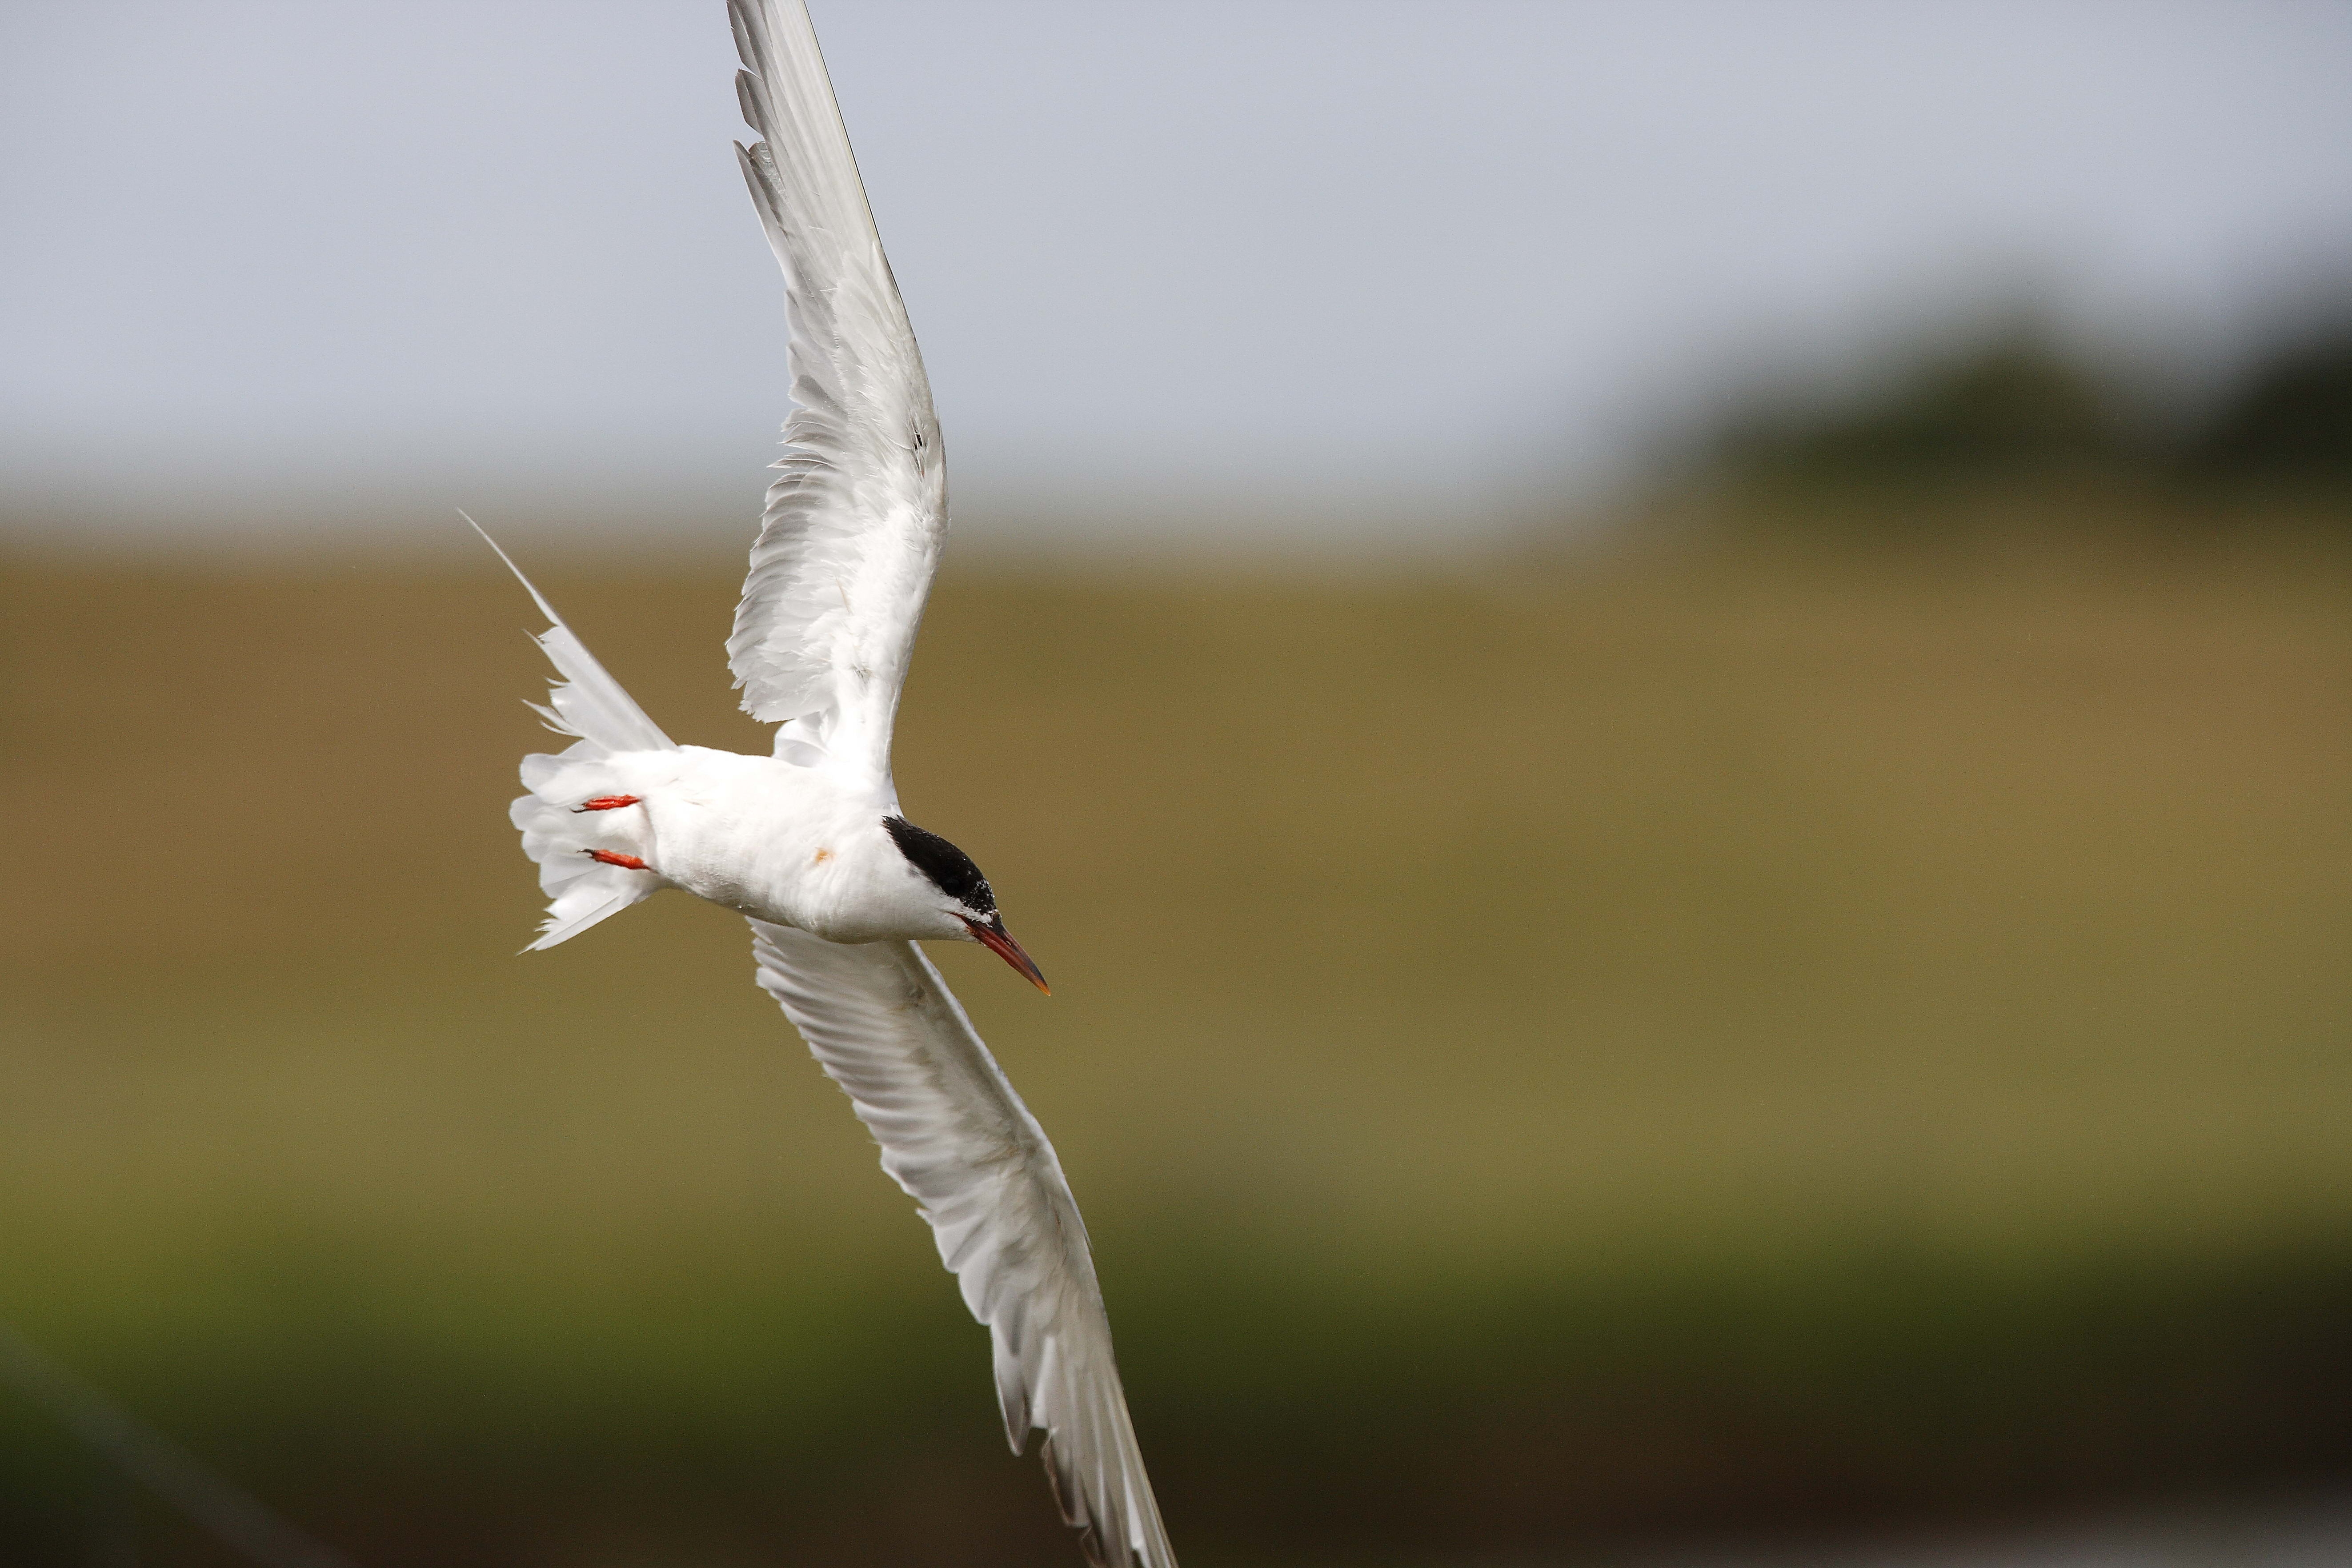 66447 download wallpaper Animals, Gull, Seagull, Flight, Bird, Blur, Smooth screensavers and pictures for free